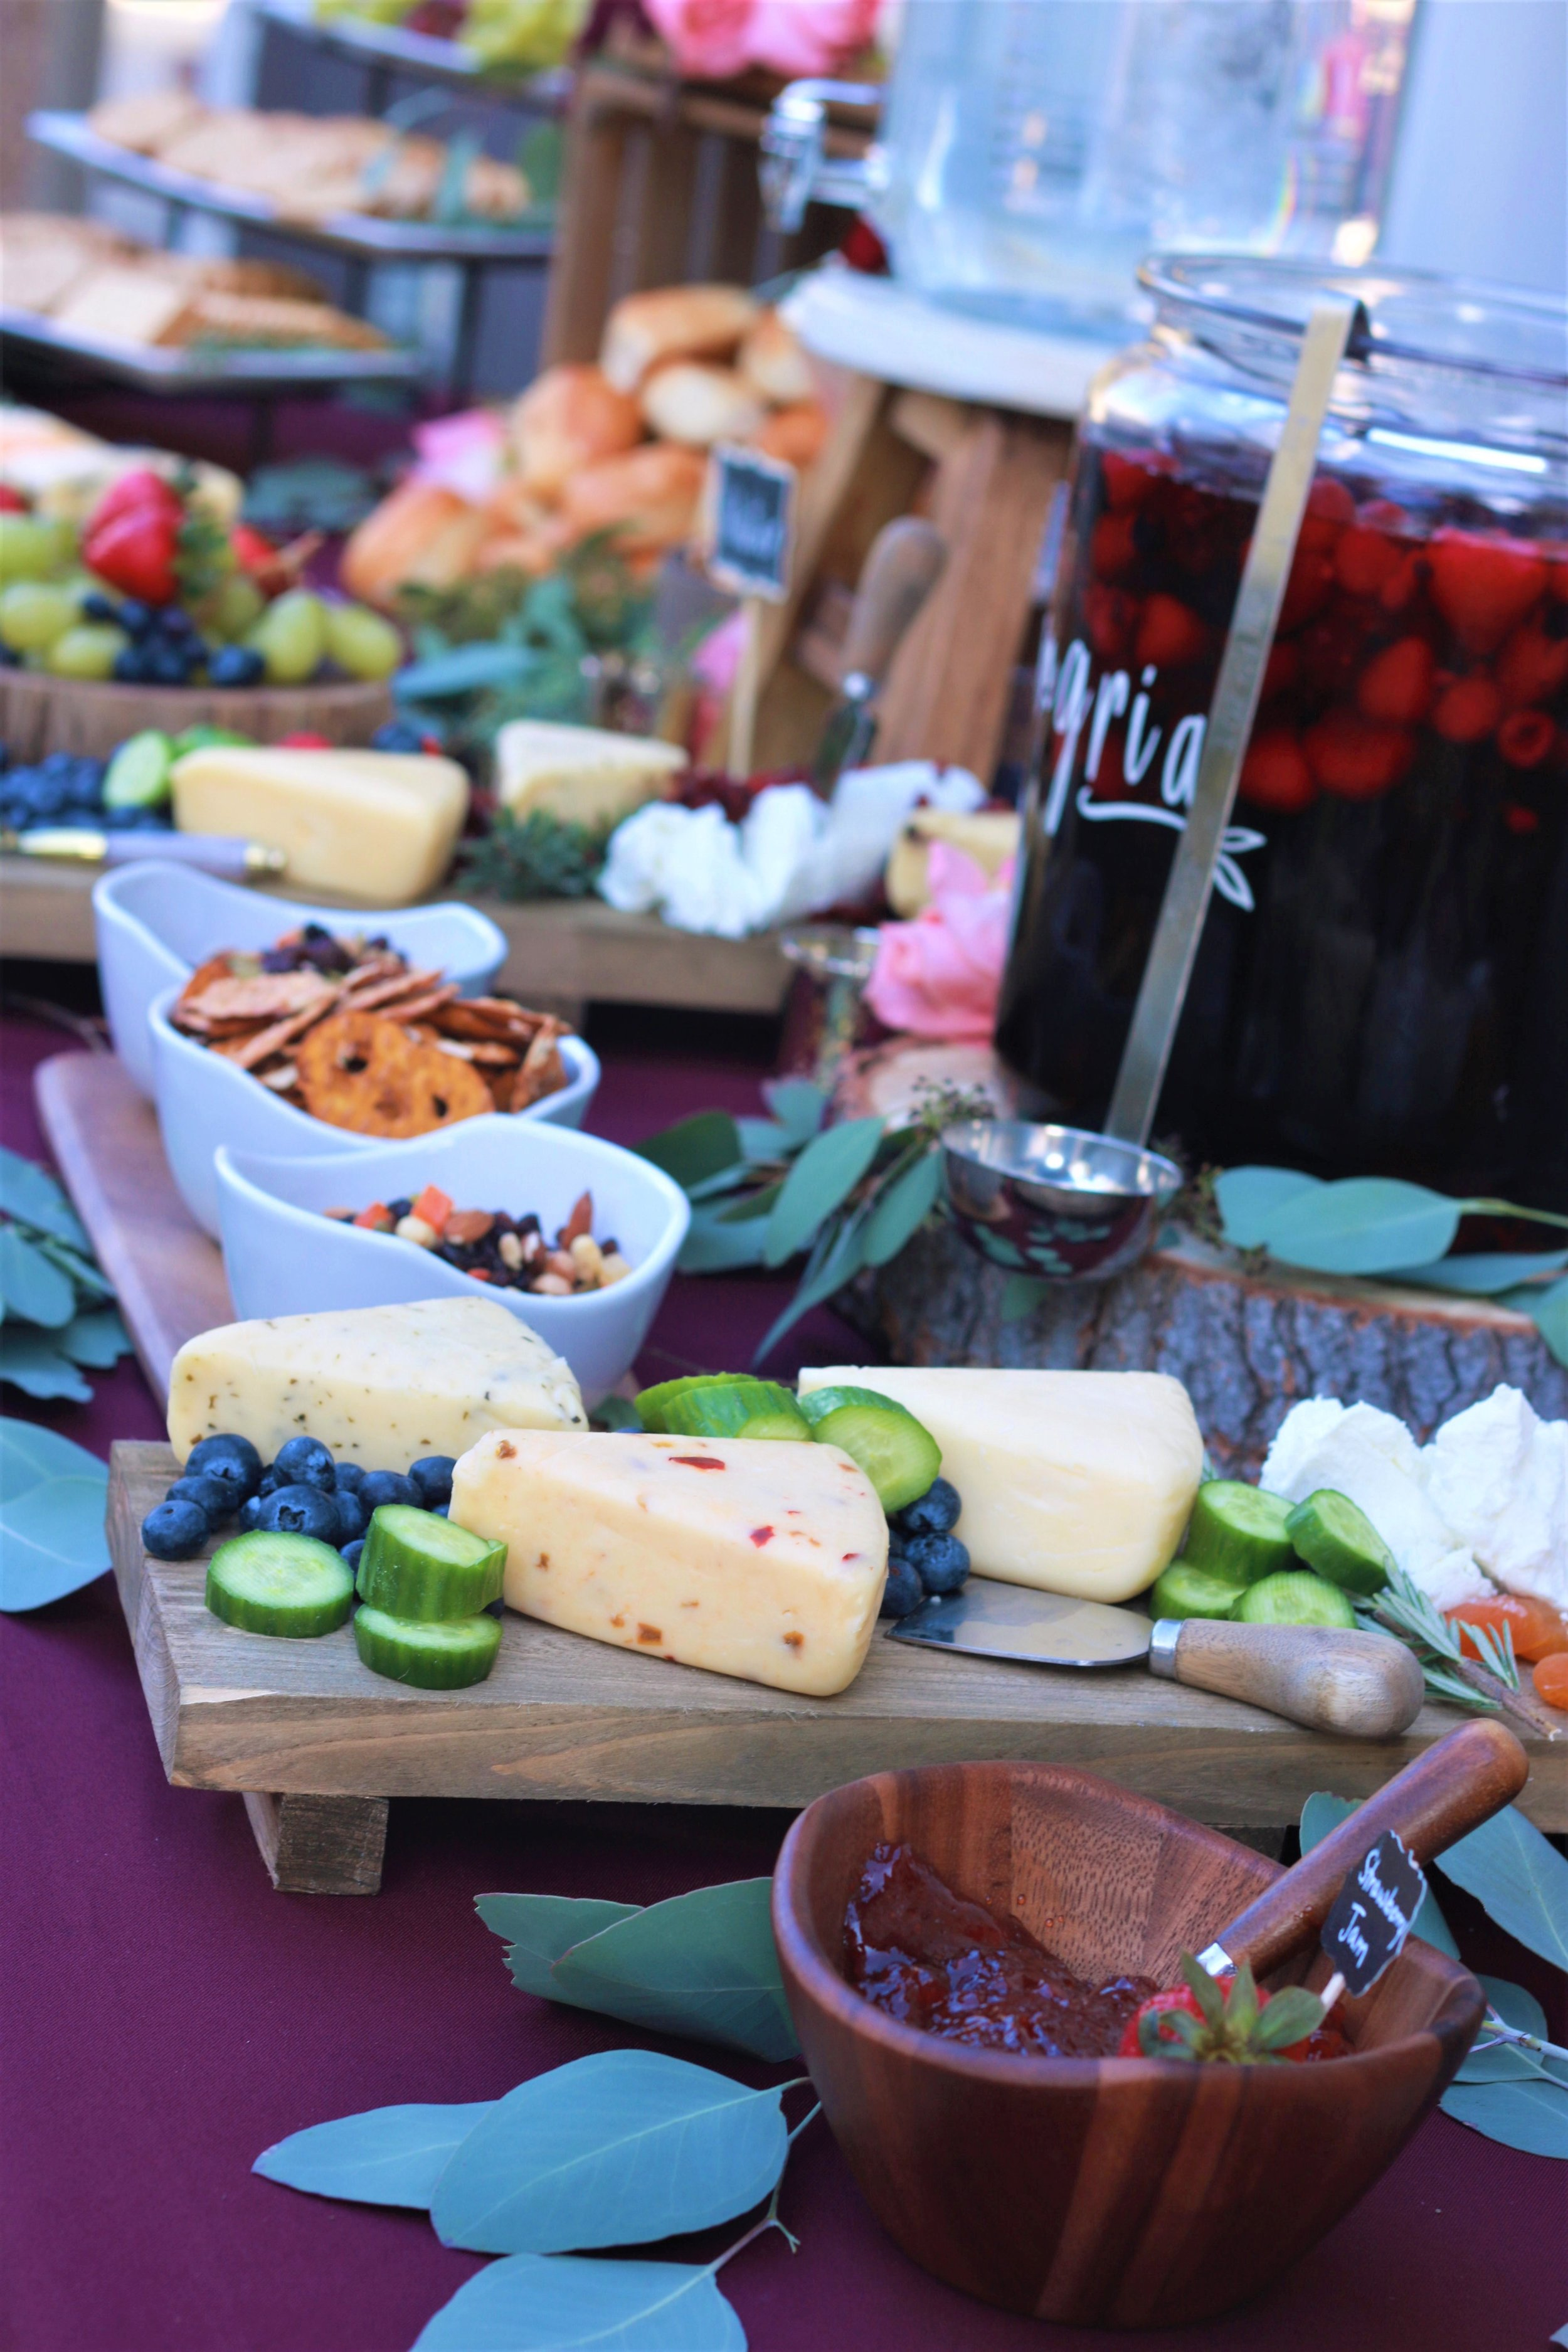 Fall Wedding Food-wedding appetizers-wedding cocktail hour-cheese and crackers-wedding style-wedding drink style-www.SugarPartiesLA.com